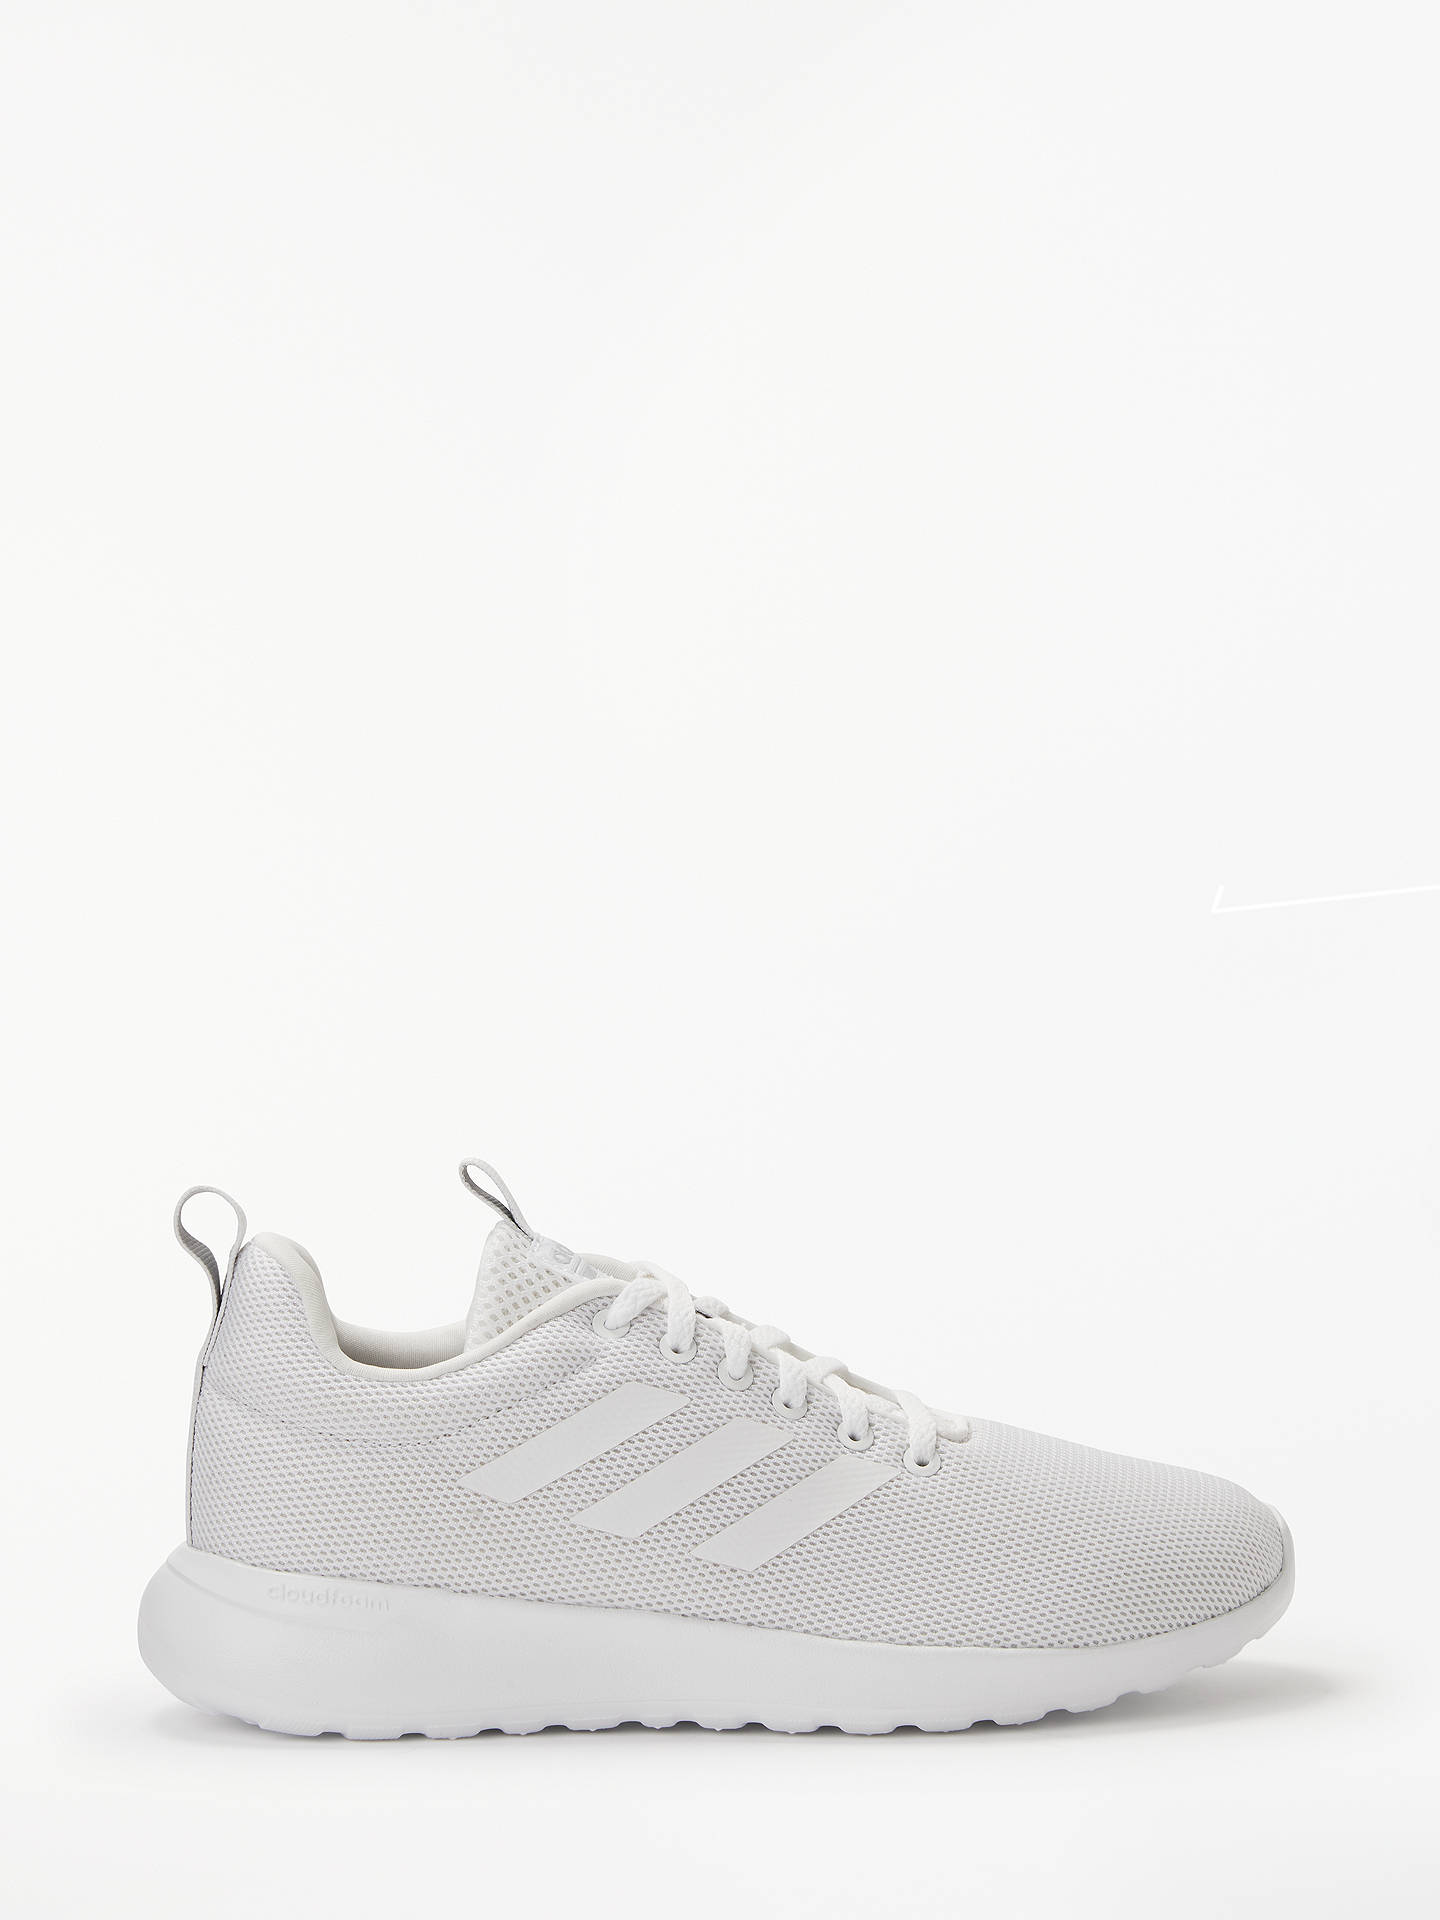 adidas Lite Racer CLN Women s Trainers at John Lewis   Partners e1a023c5f